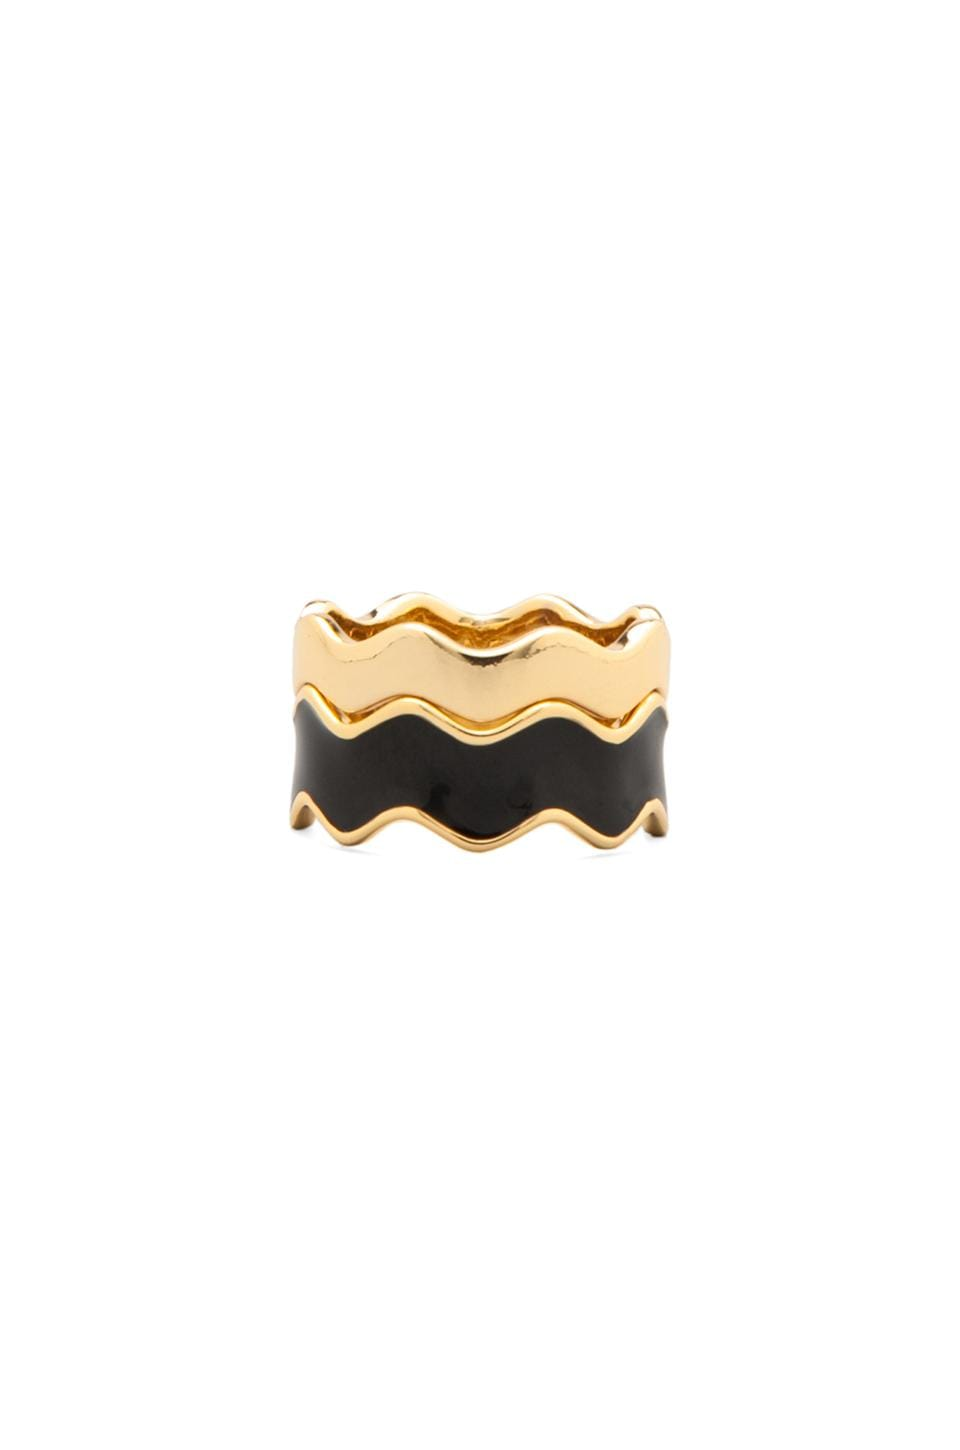 gorjana Zig Zag Enamel Double Ring Set in Black/Gold